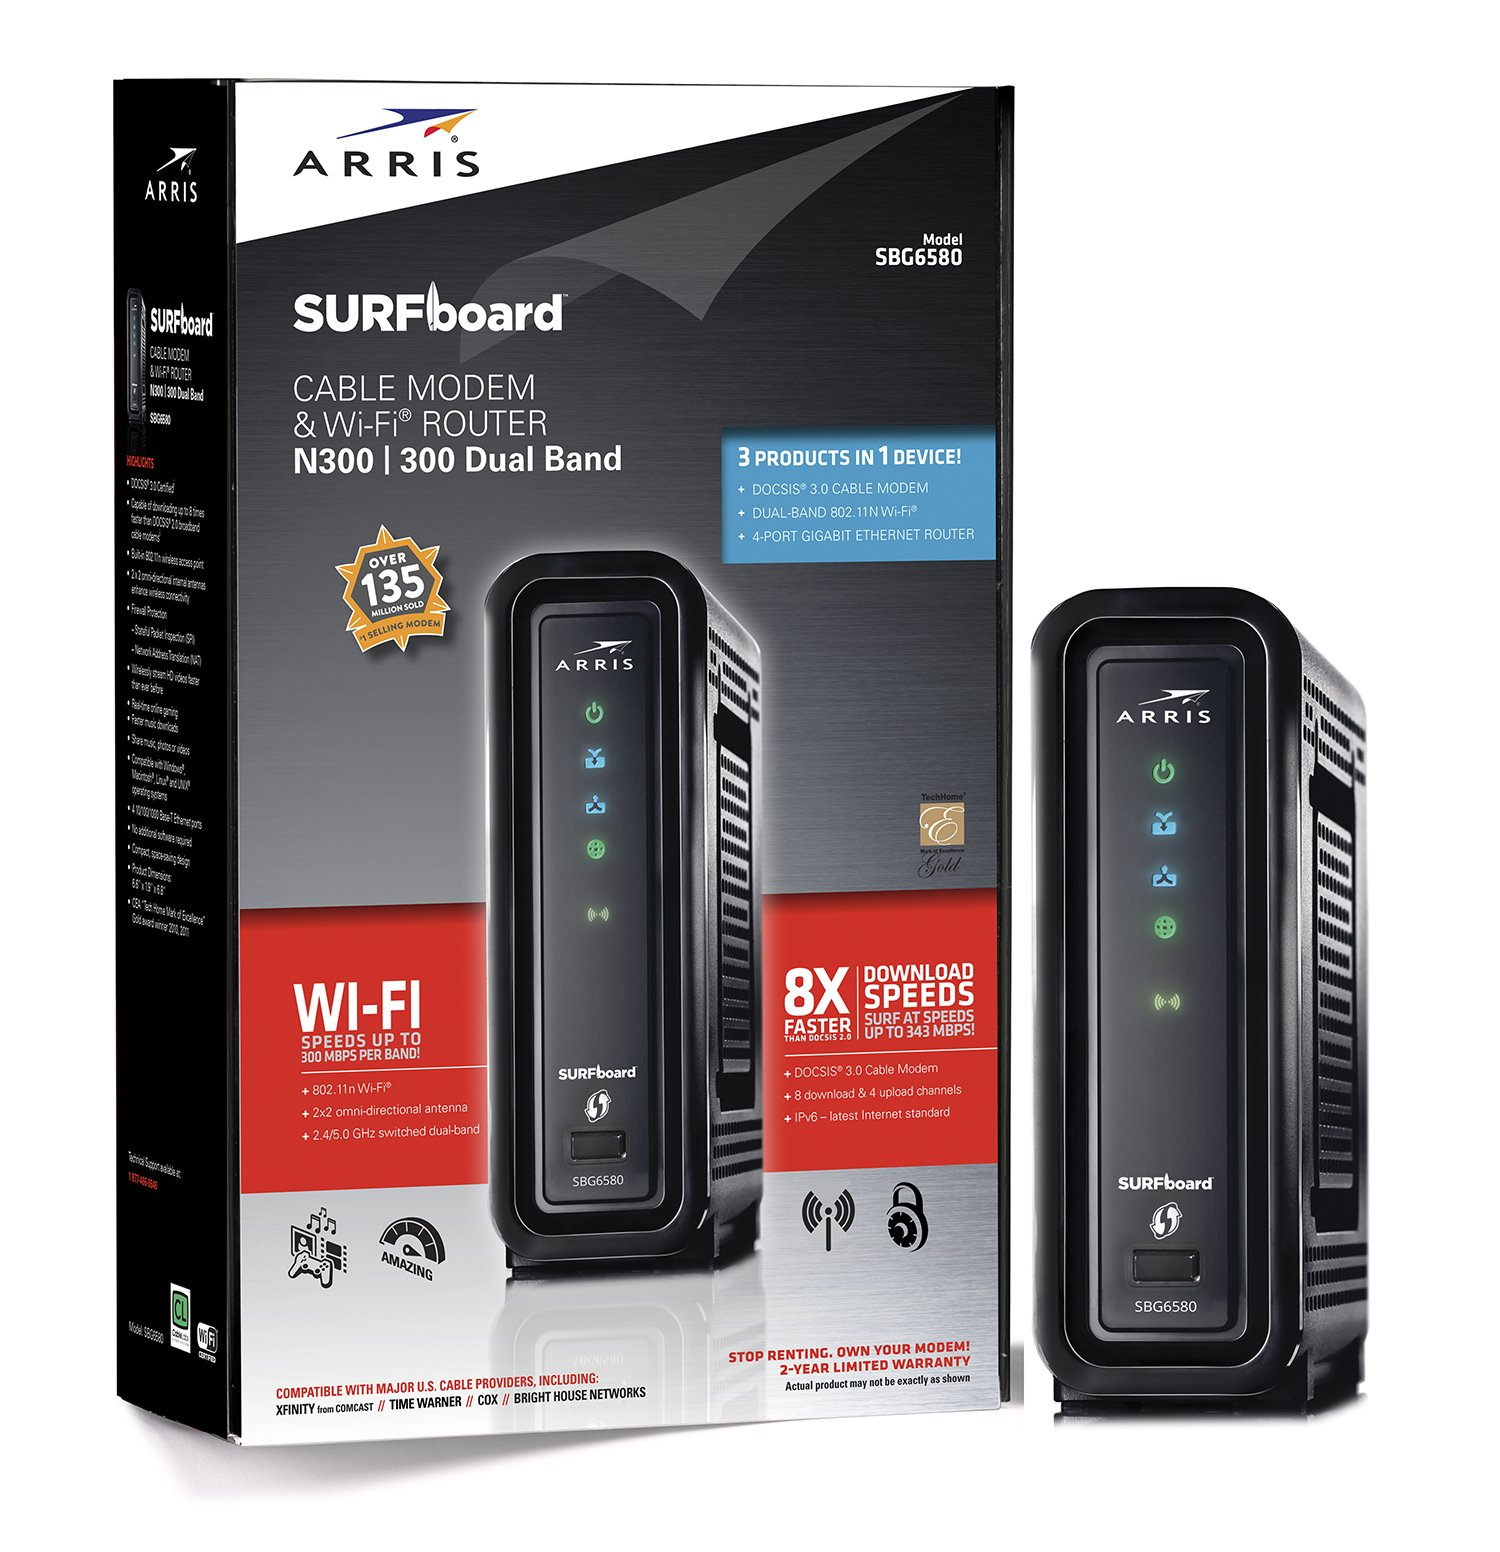 Xfinity Cable Modem And Wifi Router Wiring Diagram Arris Surfboard Sbg6580 2 8x4 Docsis 30 Wi Fi N600